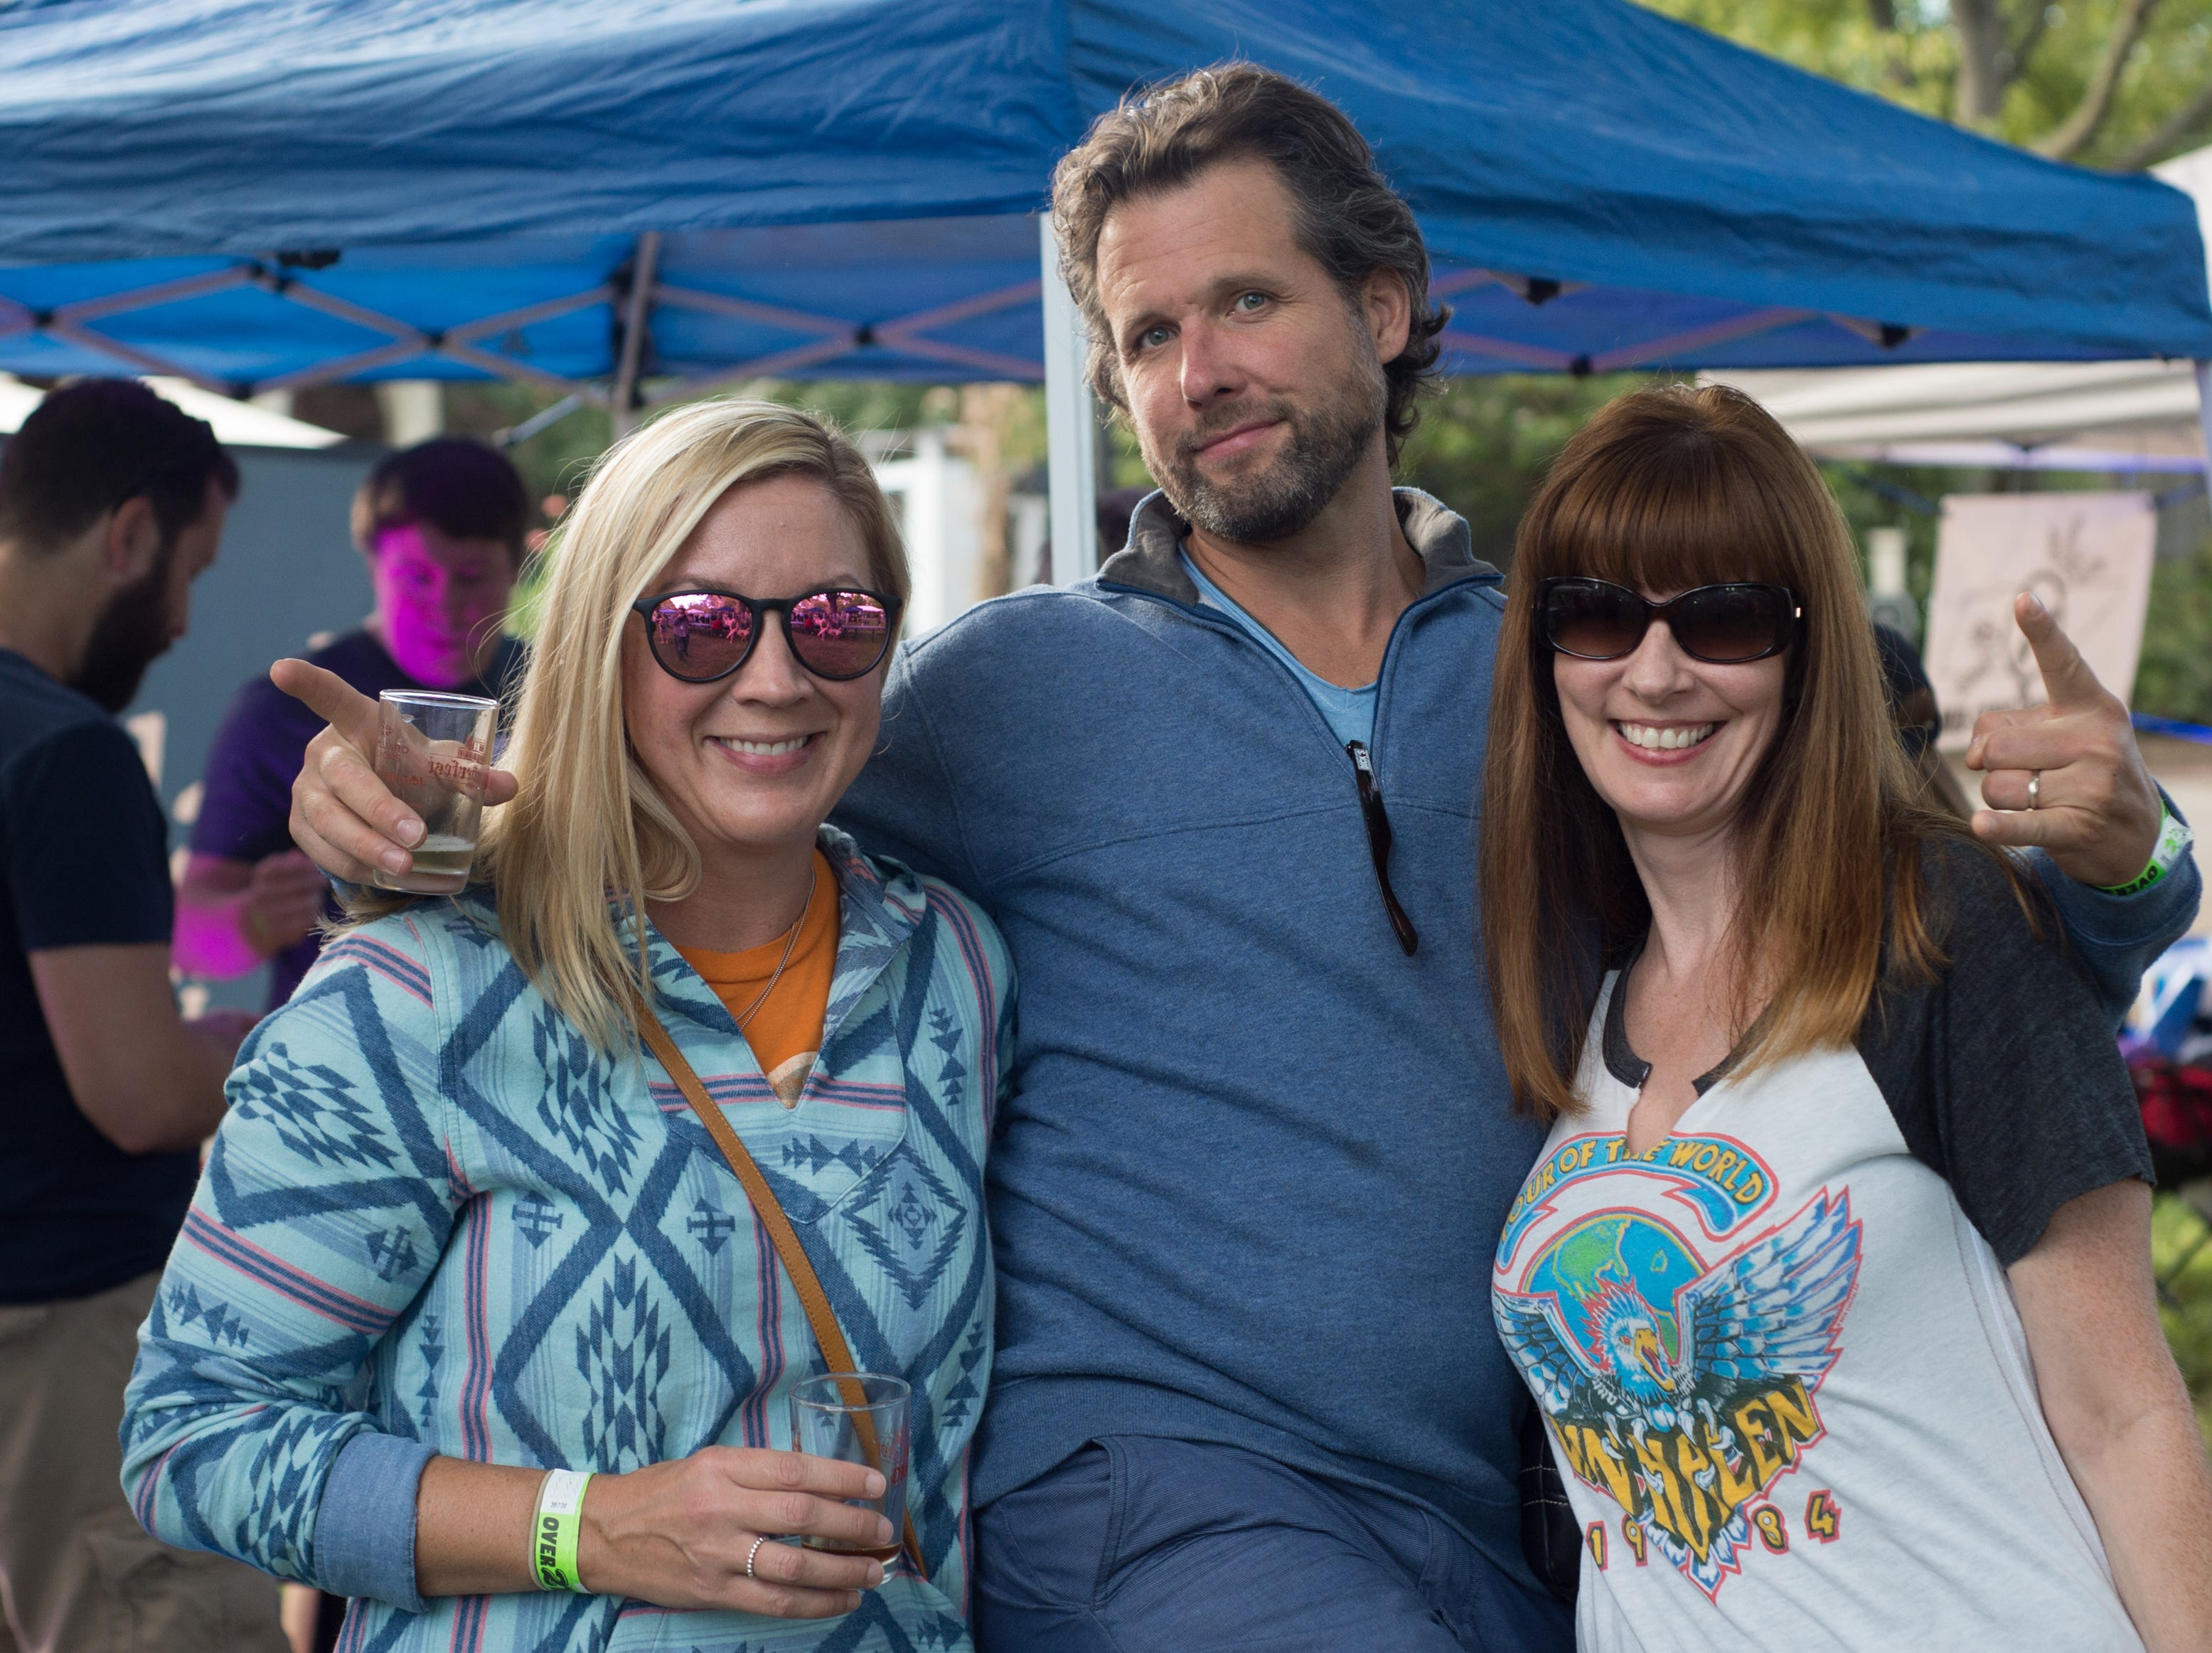 Darla and Scott Enoch with Lori Hastings during Oktoberfest at Oaklands Mansion in Murfreesboro on Saturday, Sept. 29.